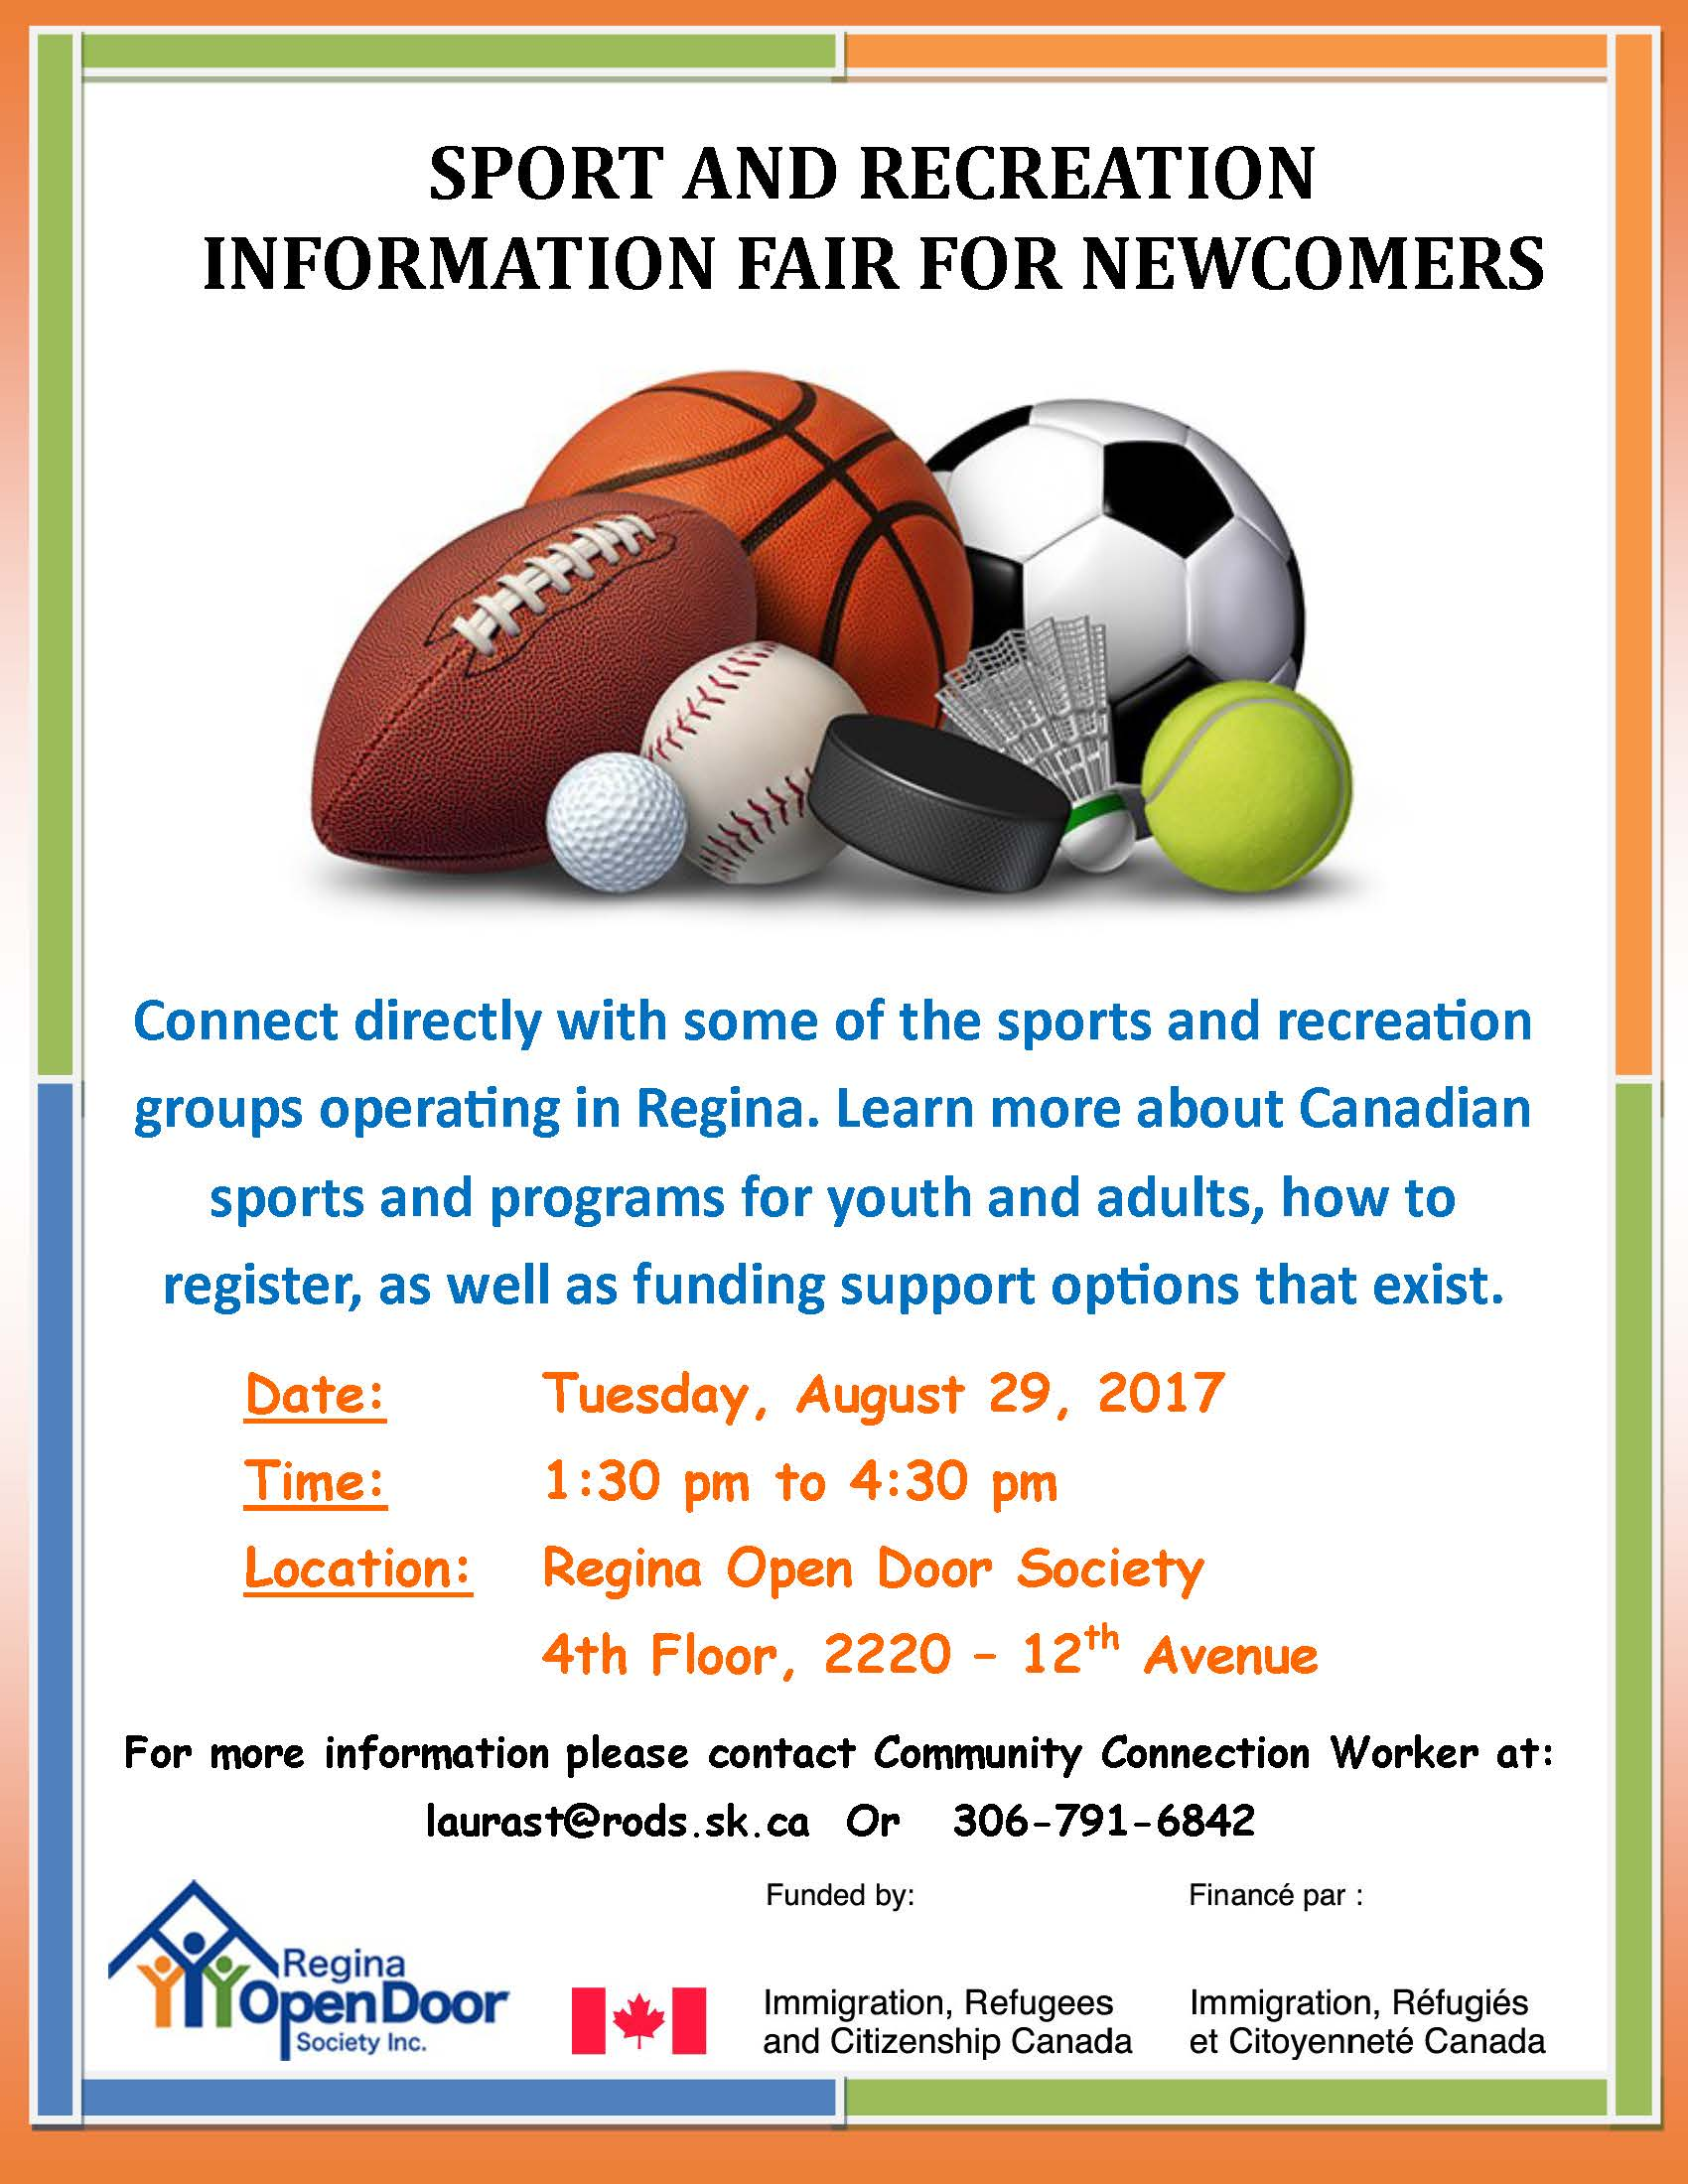 Sports and Recreation Information Fair for Newcomers!  Find Out About Canadian Sports for Kids and Adults in Regina and How to Register - August 29 - Image 1